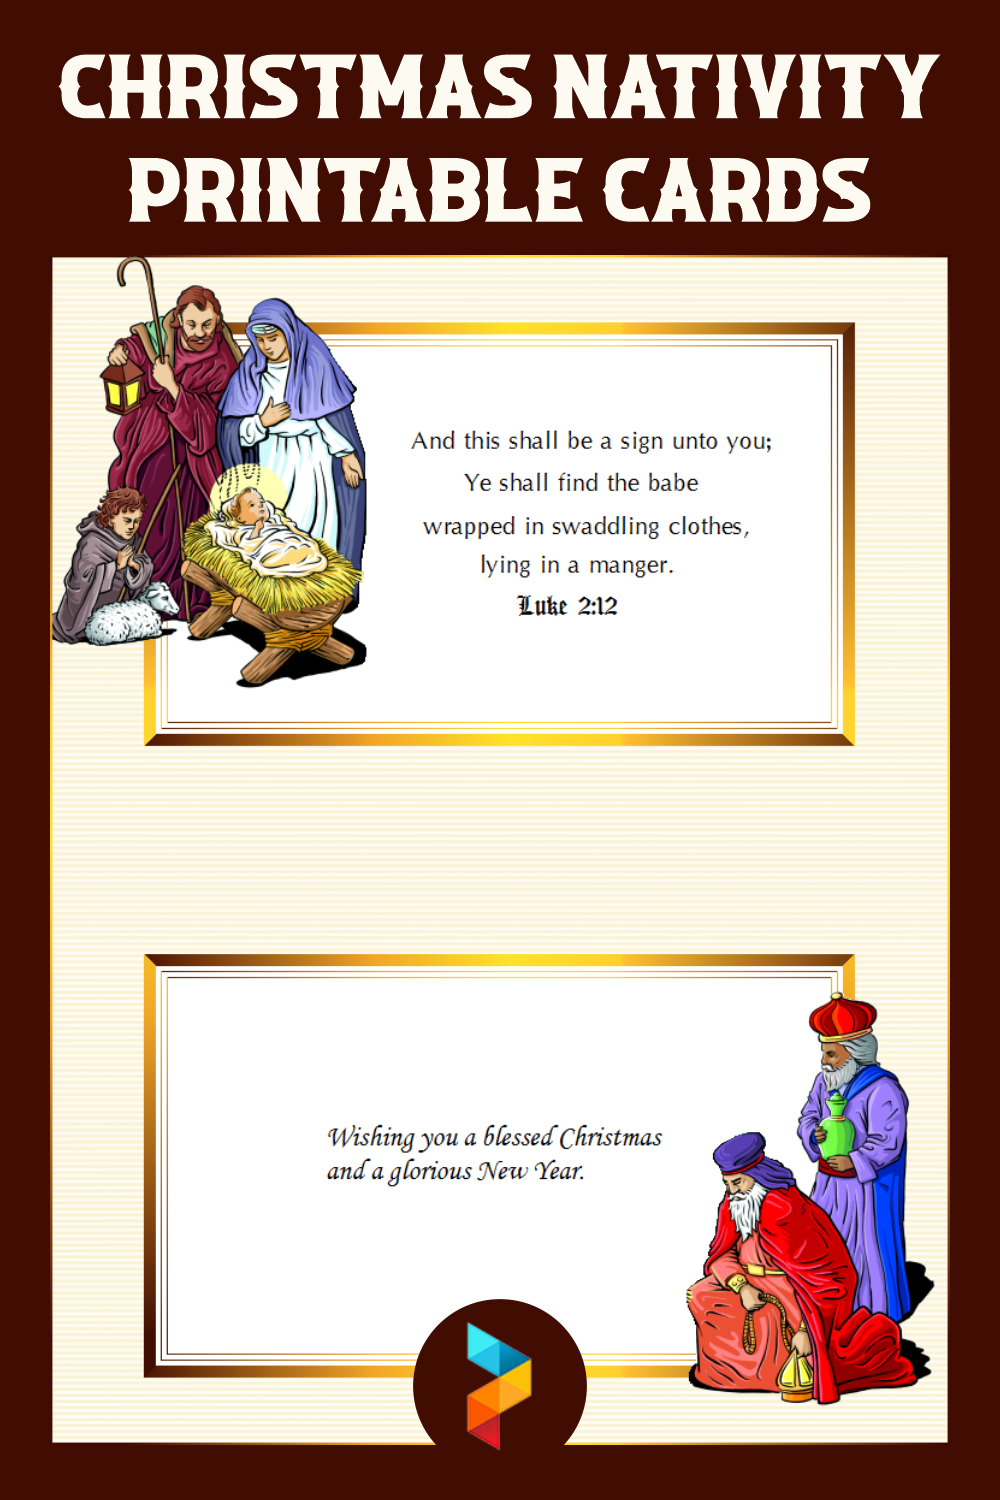 Christmas Nativity Printable Cards